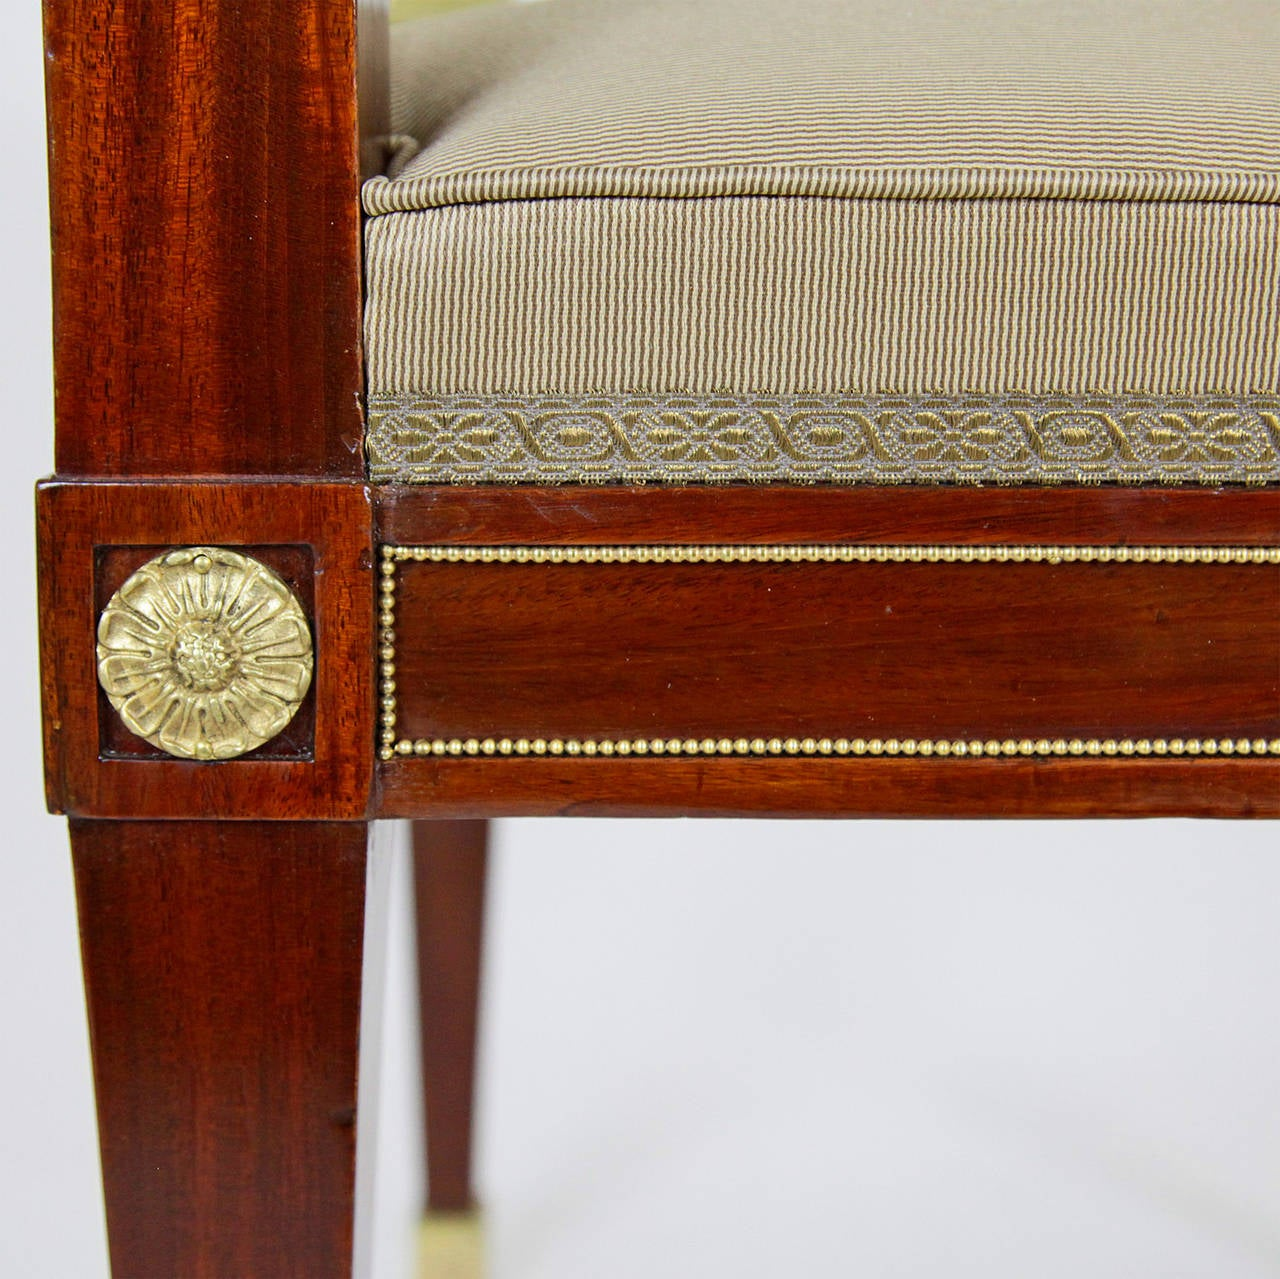 dating empire furniture Shop credenzas, sideboards & buffets at chairish, the design lover's marketplace for the best vintage and used furniture, decor and art make an offer today.